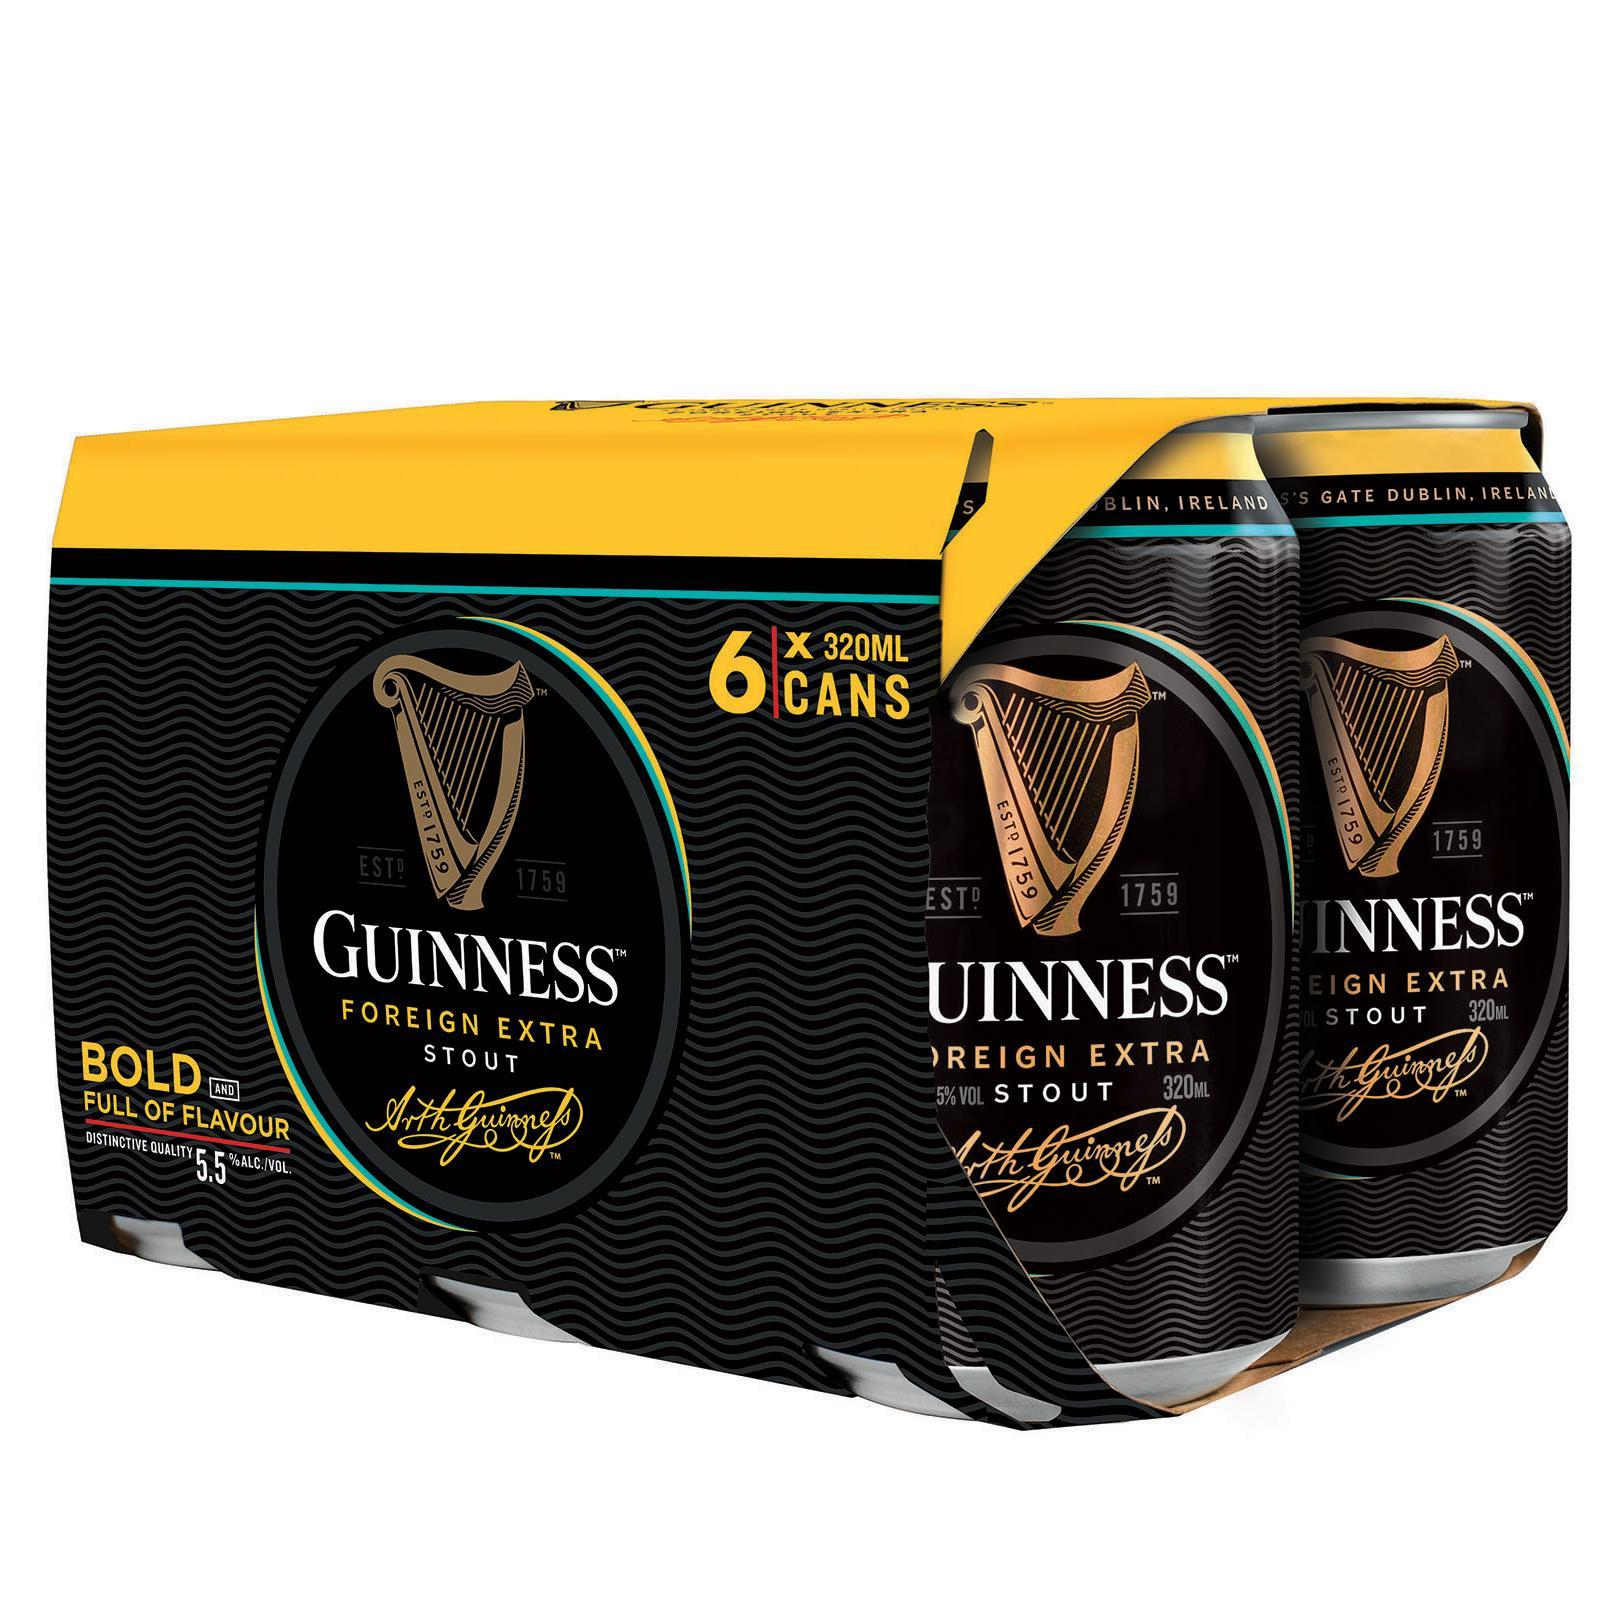 GUINNESS Foreign Extra Stout Beer 6sX320ml